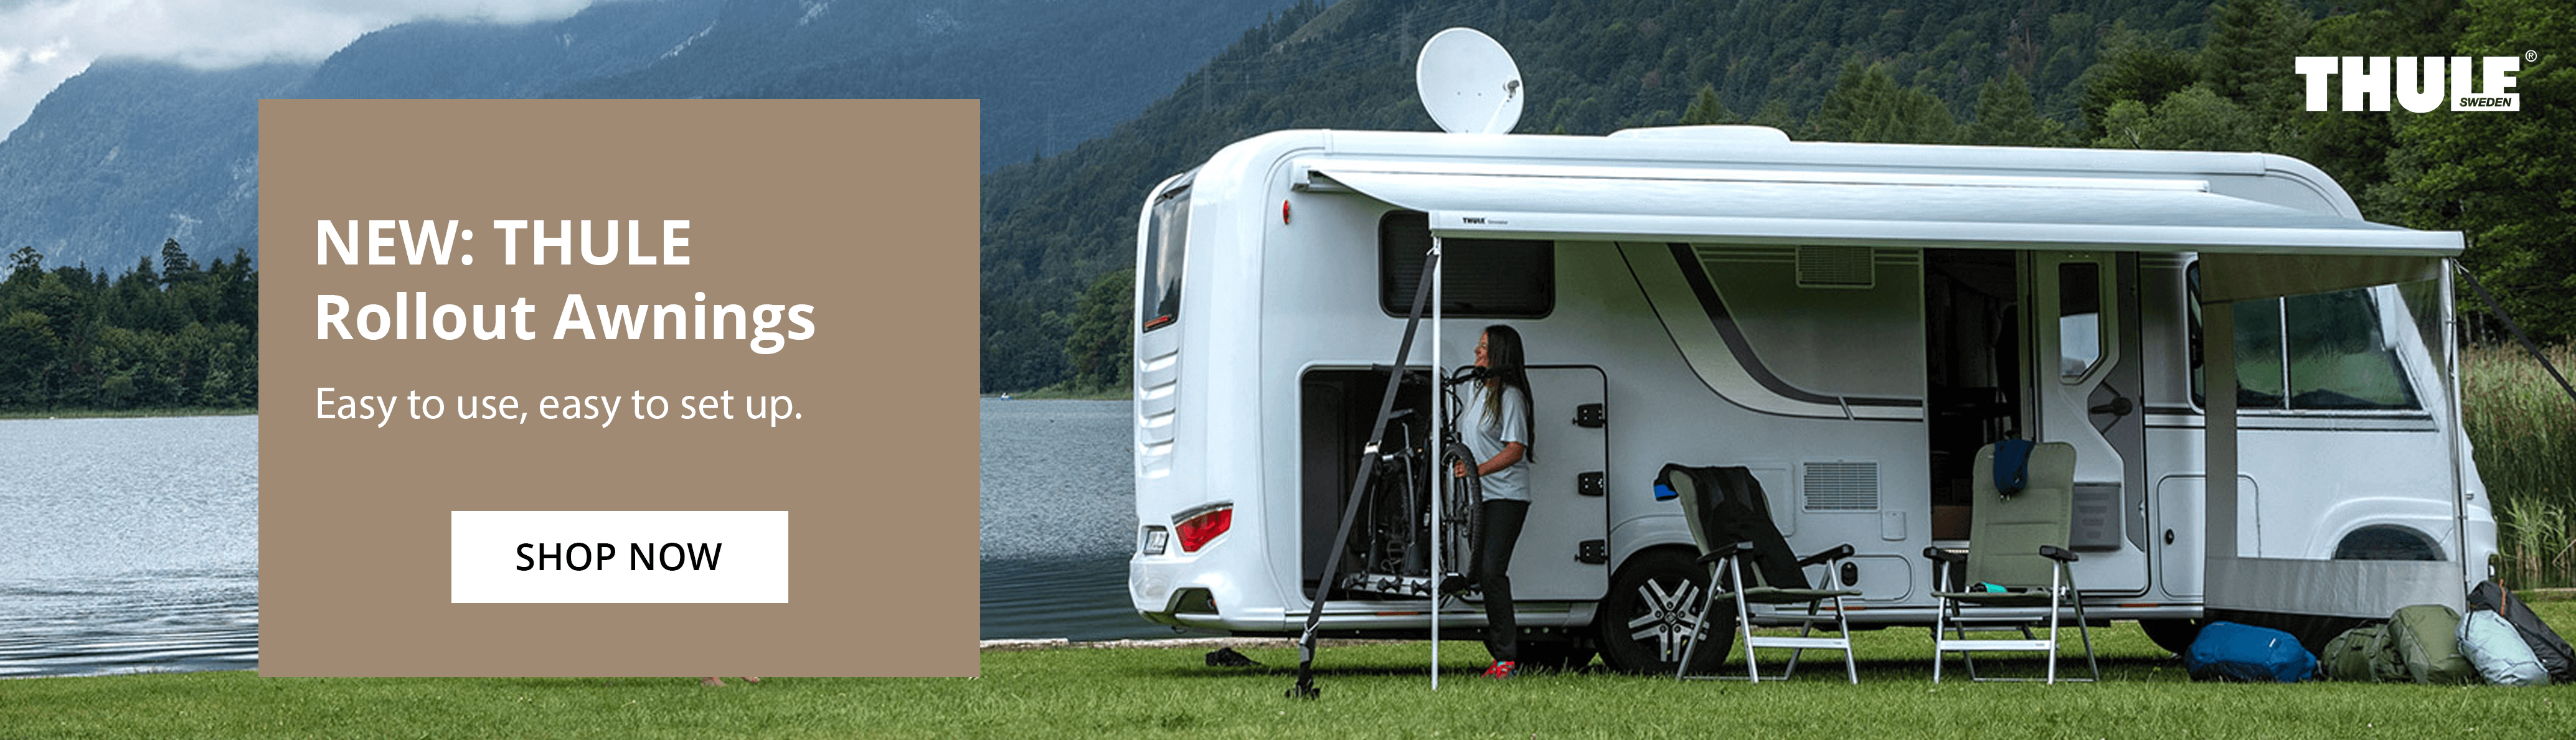 THULE Rollout Awnings